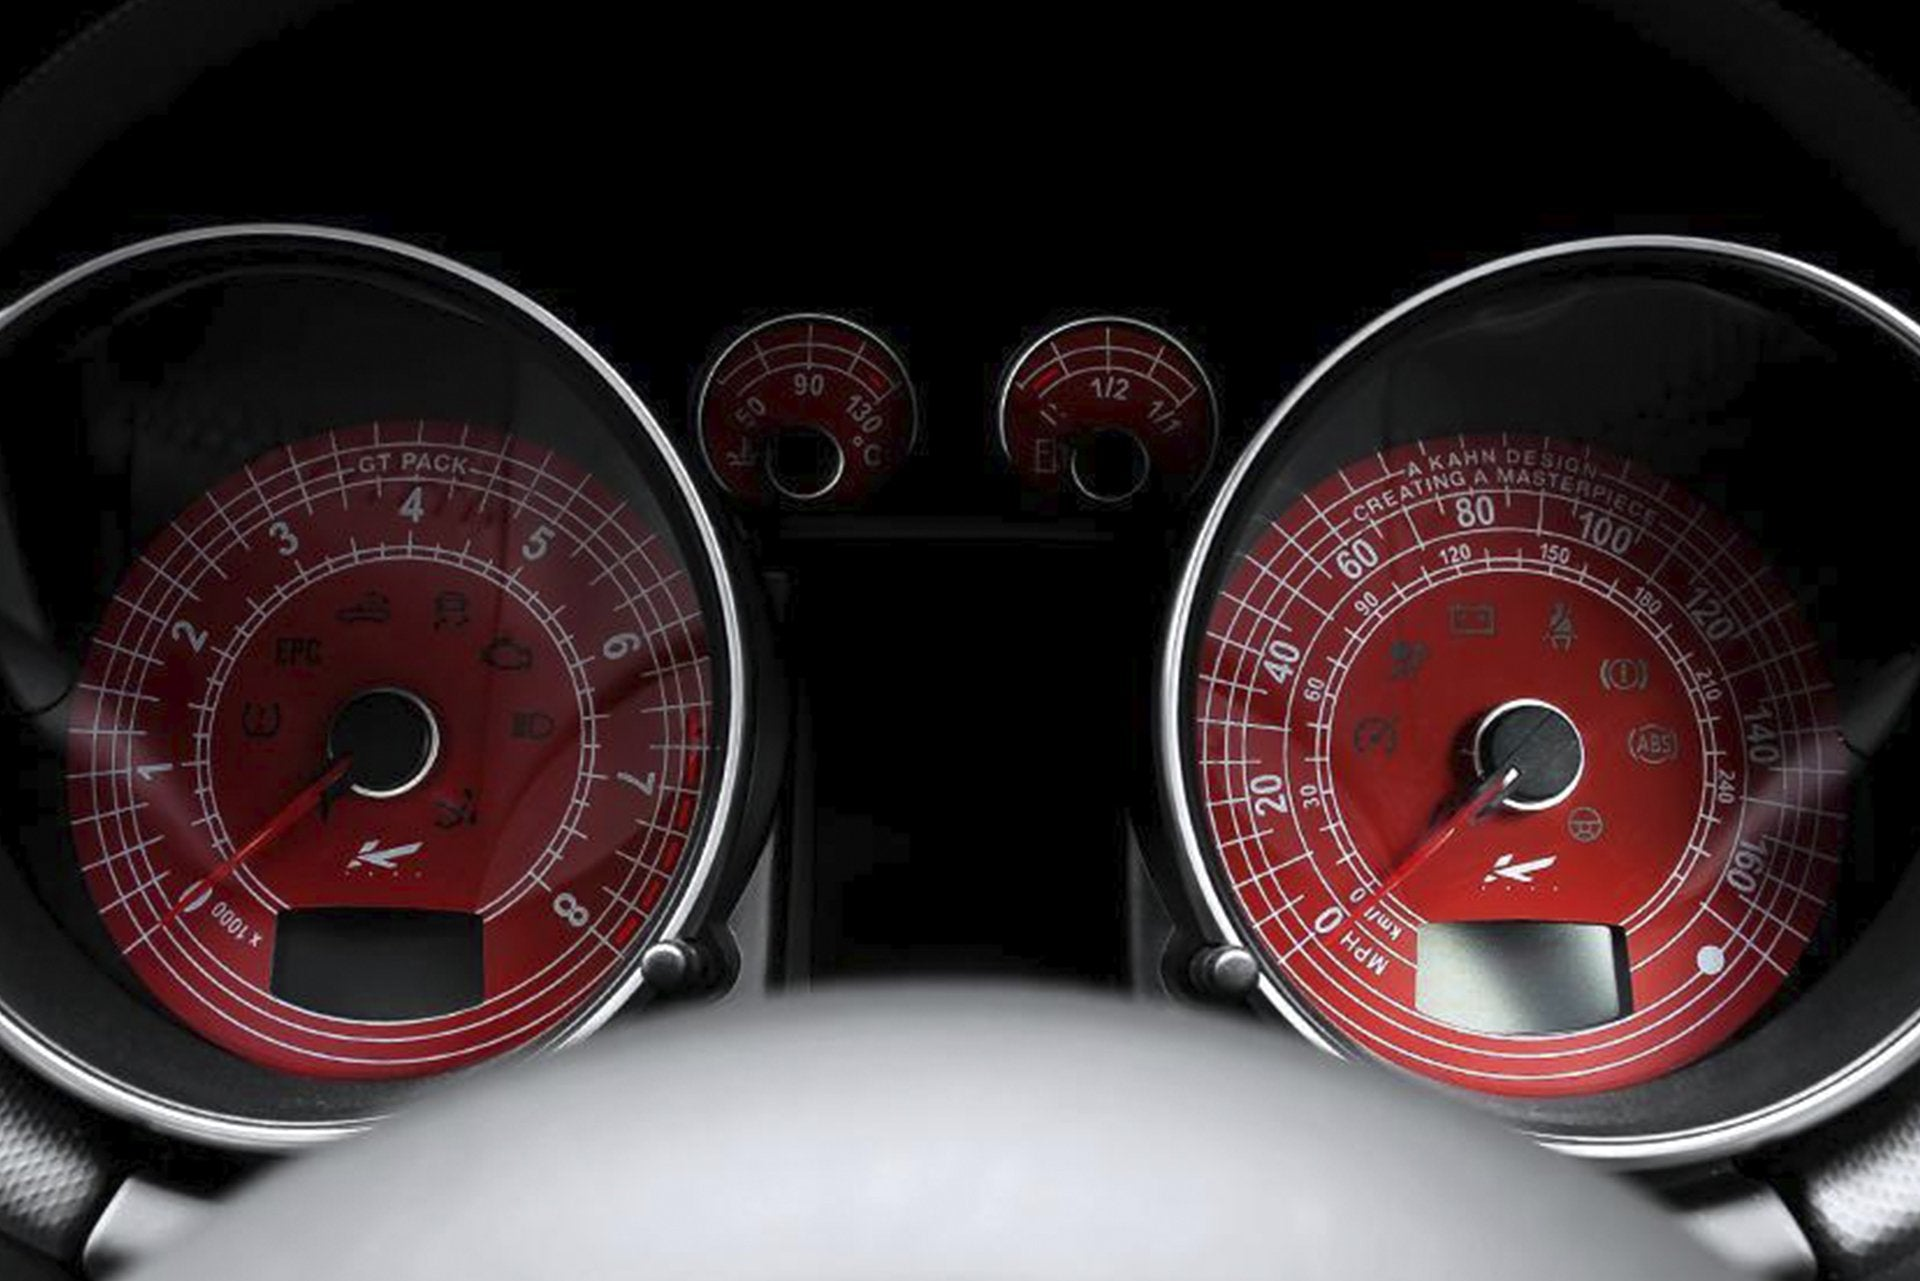 Audi Tt  (1998-2006) Speedo Dials Red by Kahn - Image 1863